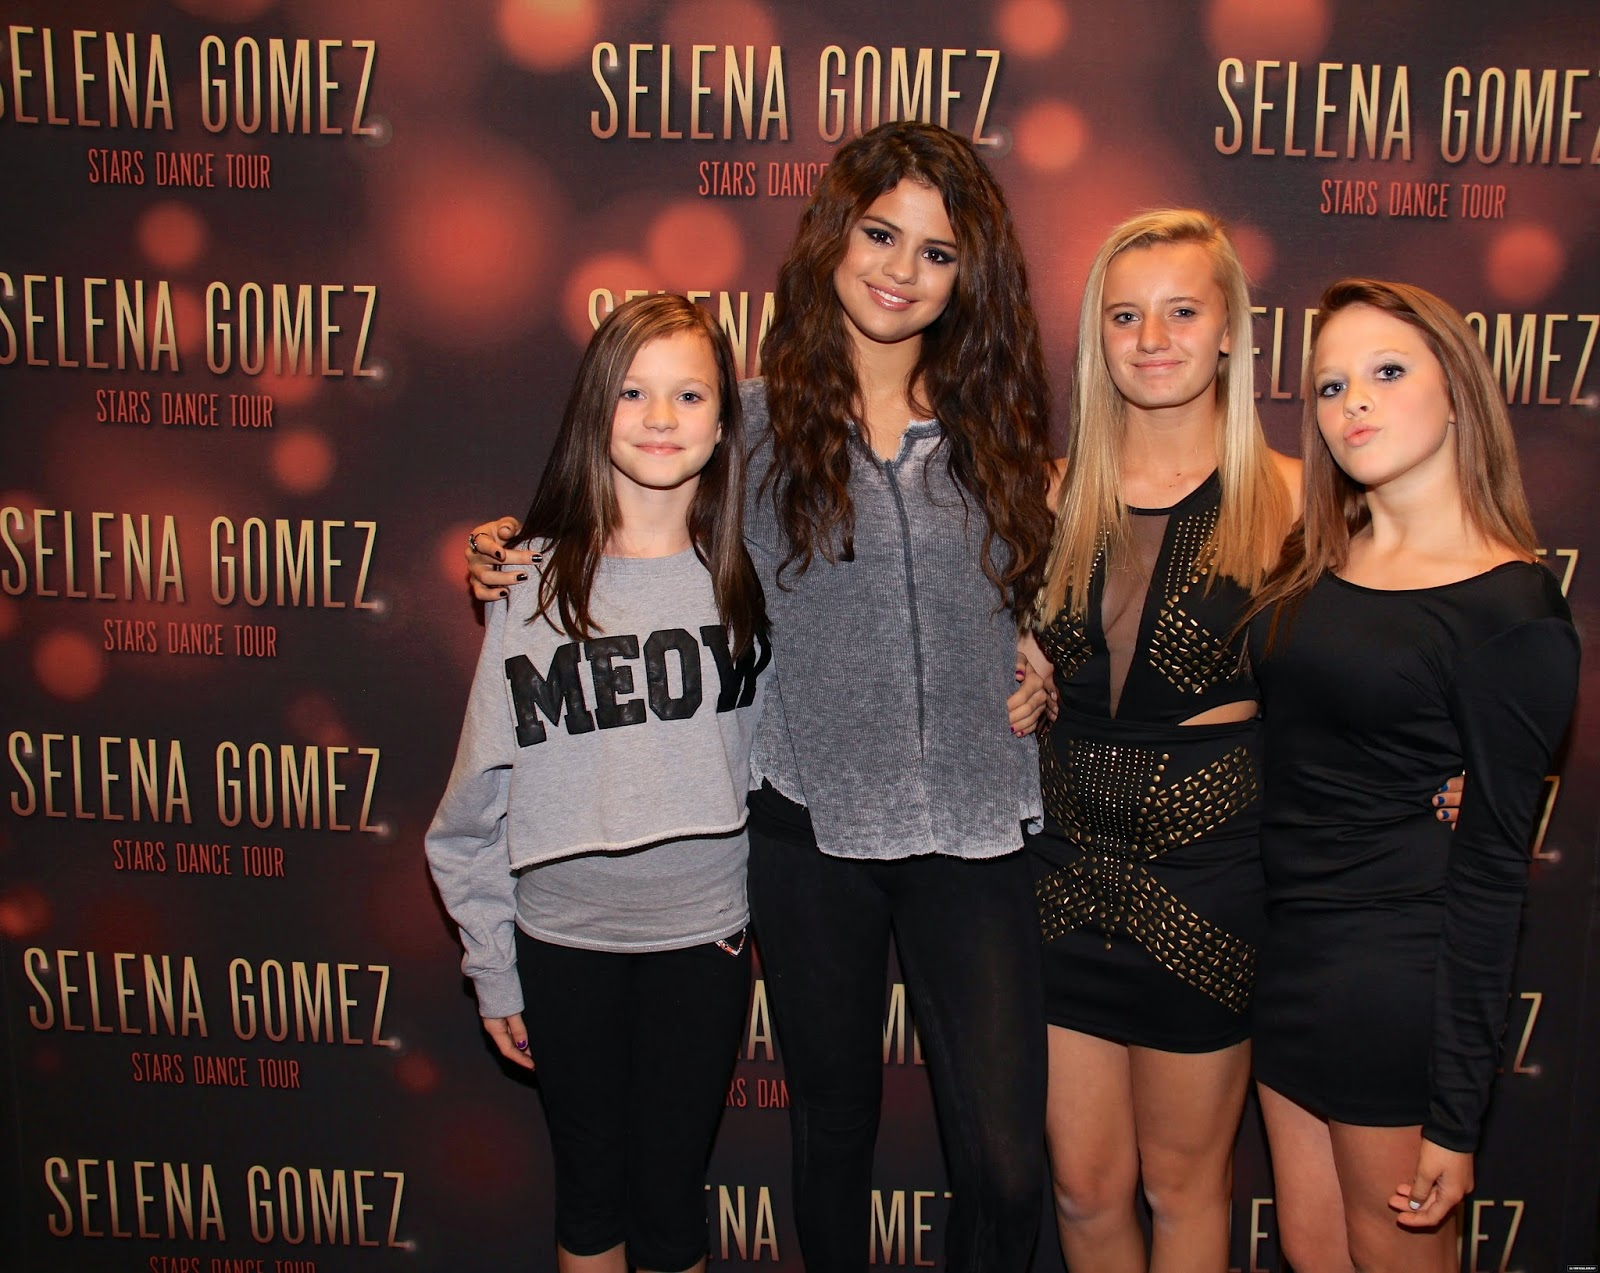 meet and greet selena gomez 2013 billboard